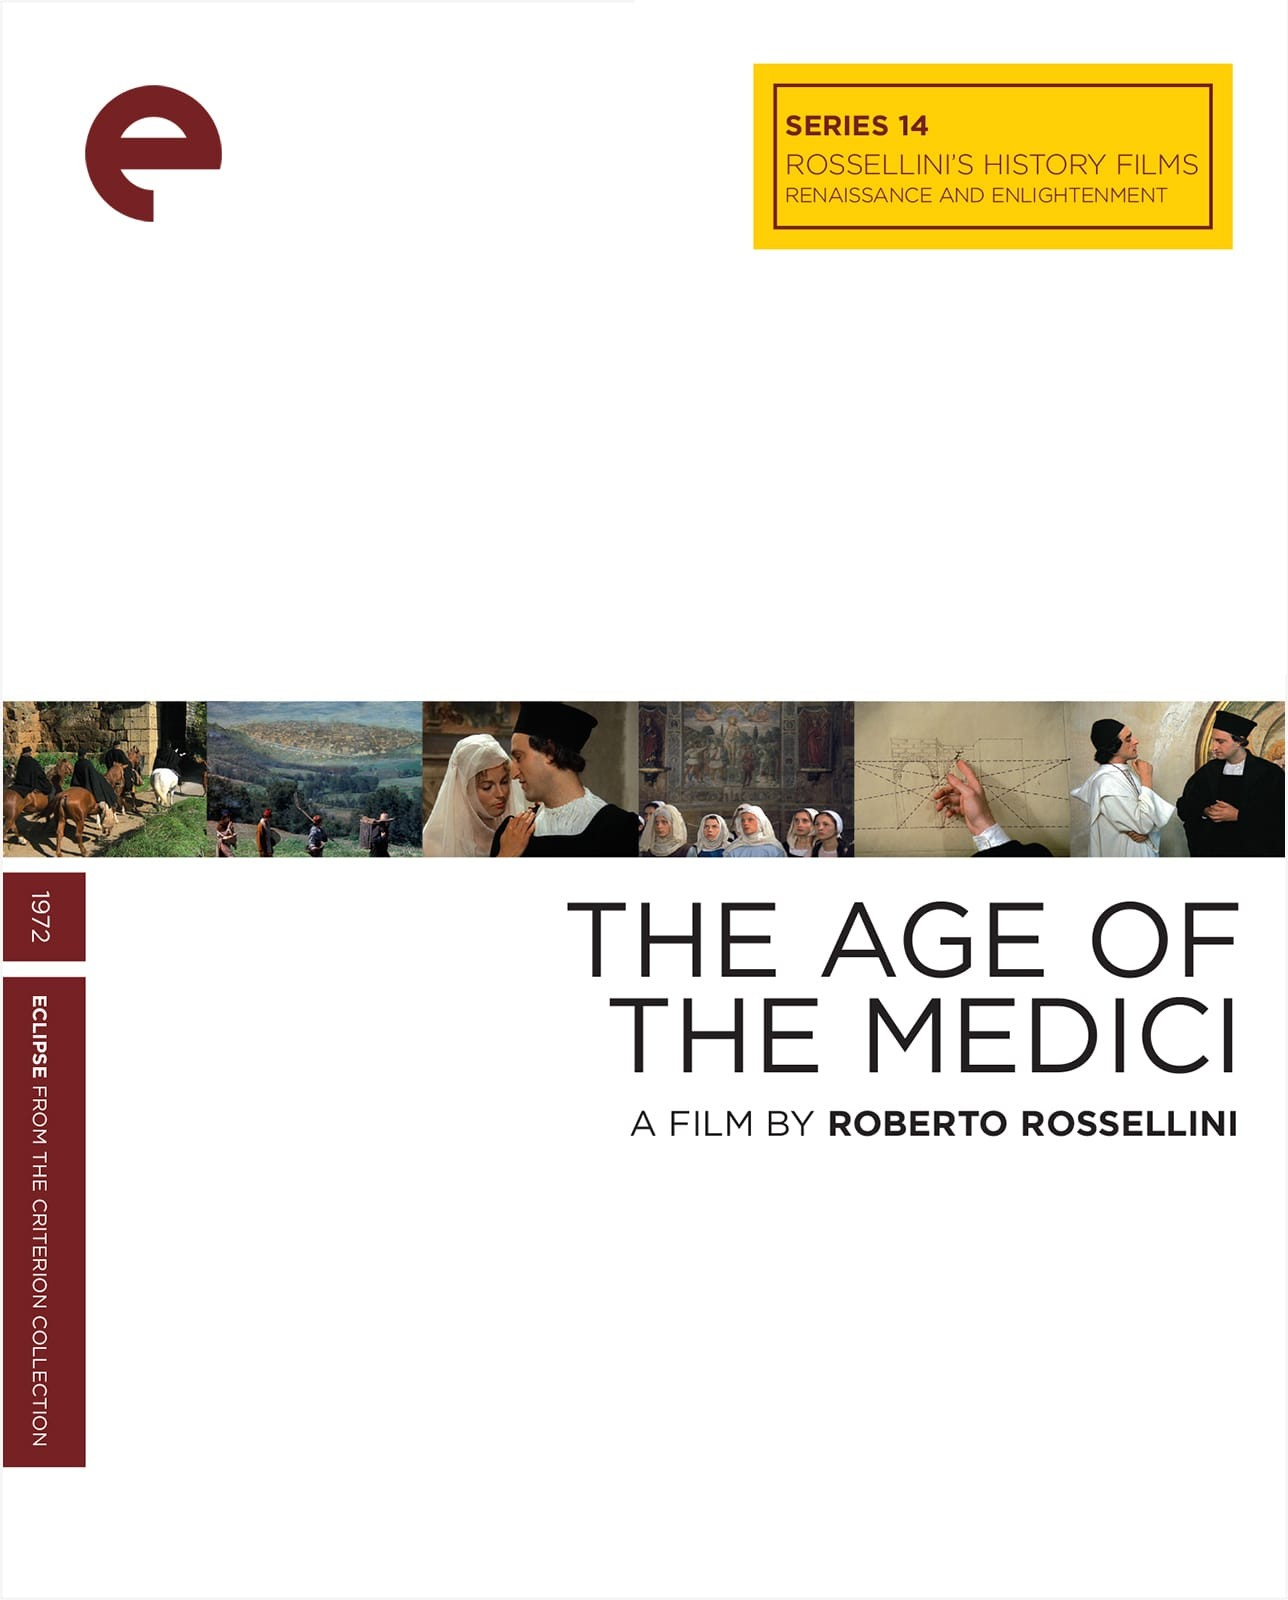 The Age of the Medici